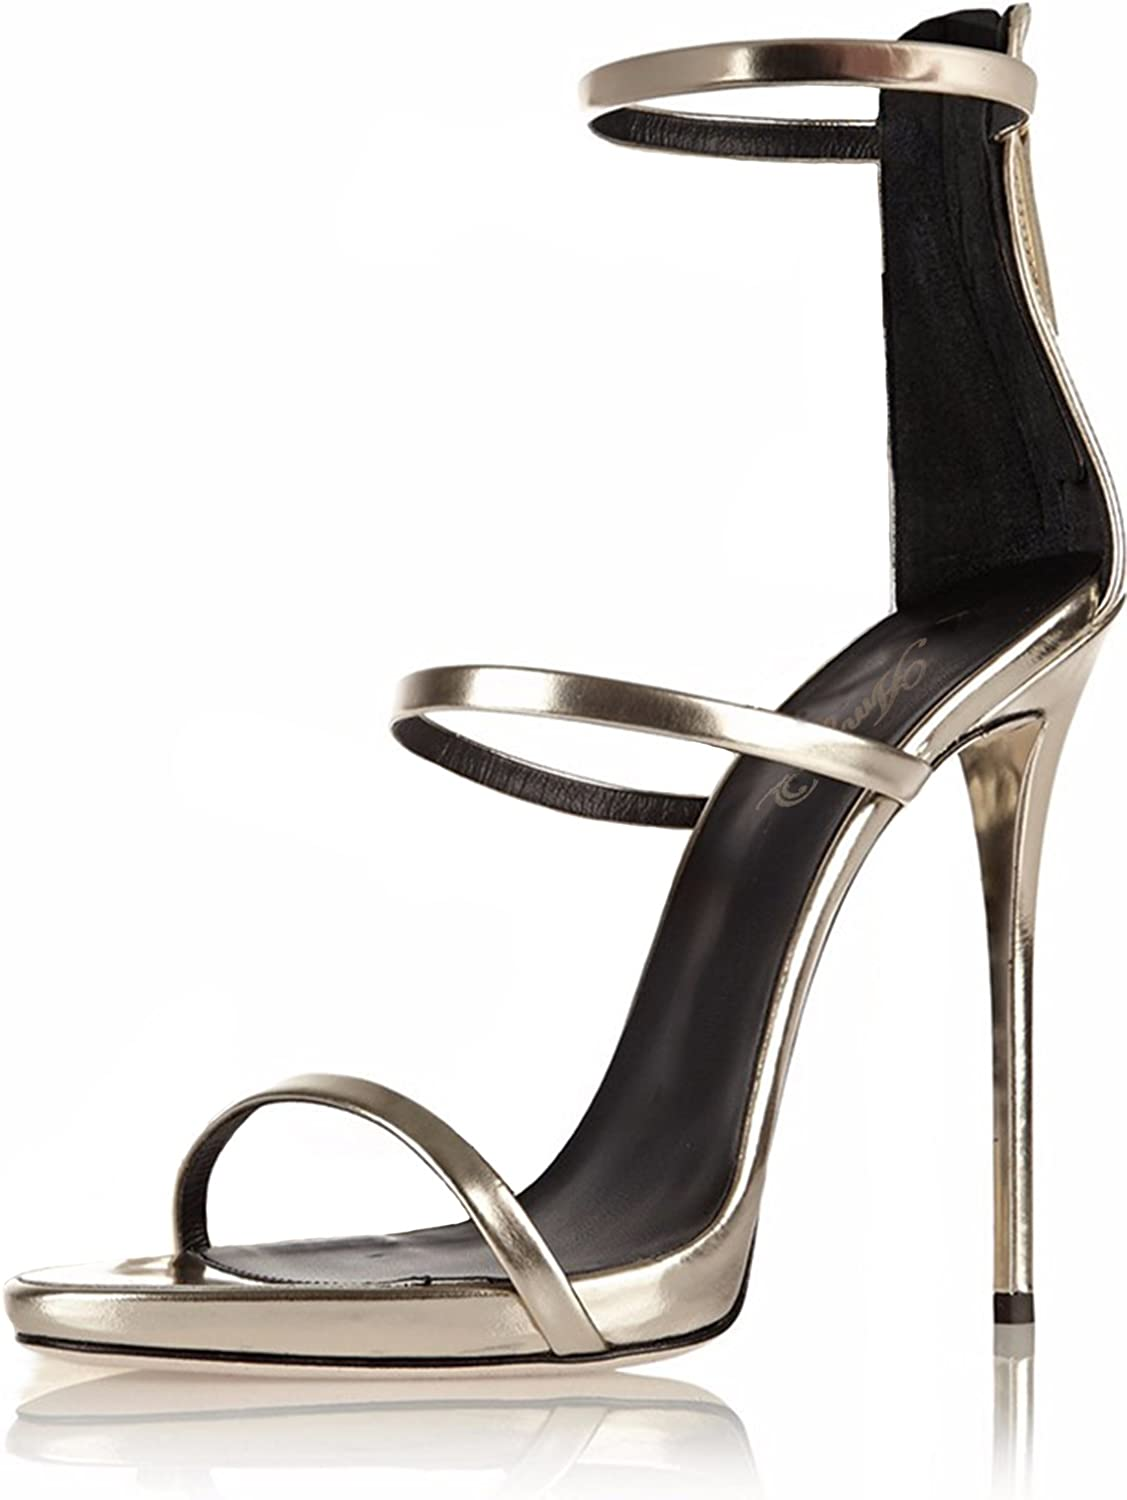 Amy Q Women Shiny Sliver Strappy Sandals with Three Straps Evening Dress High Heels Covered Heel shoes